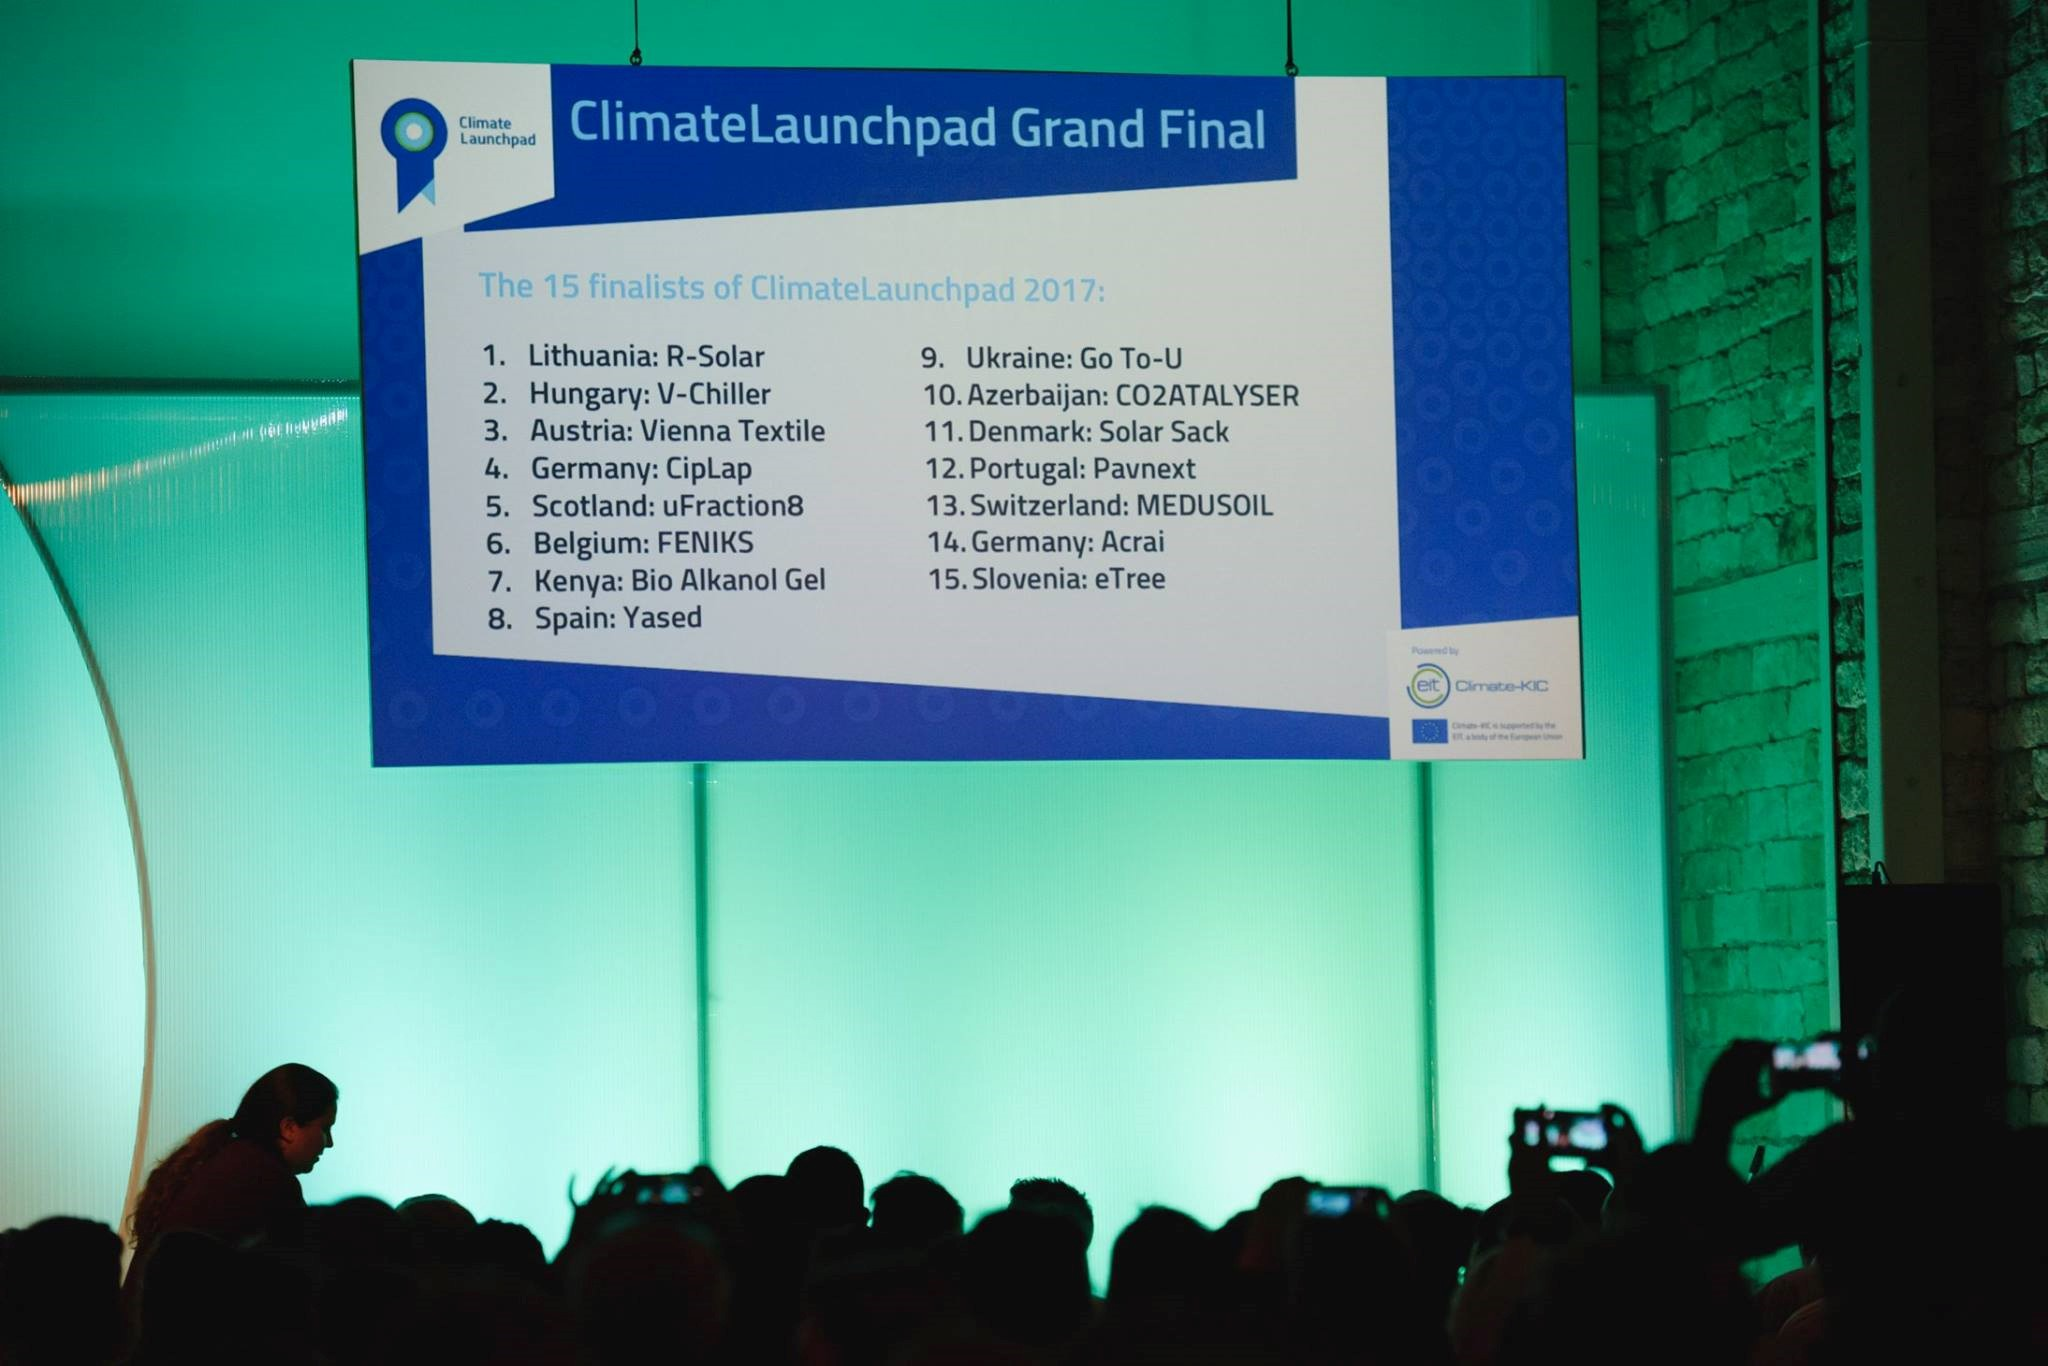 Climate KIC event results slide on projector screen